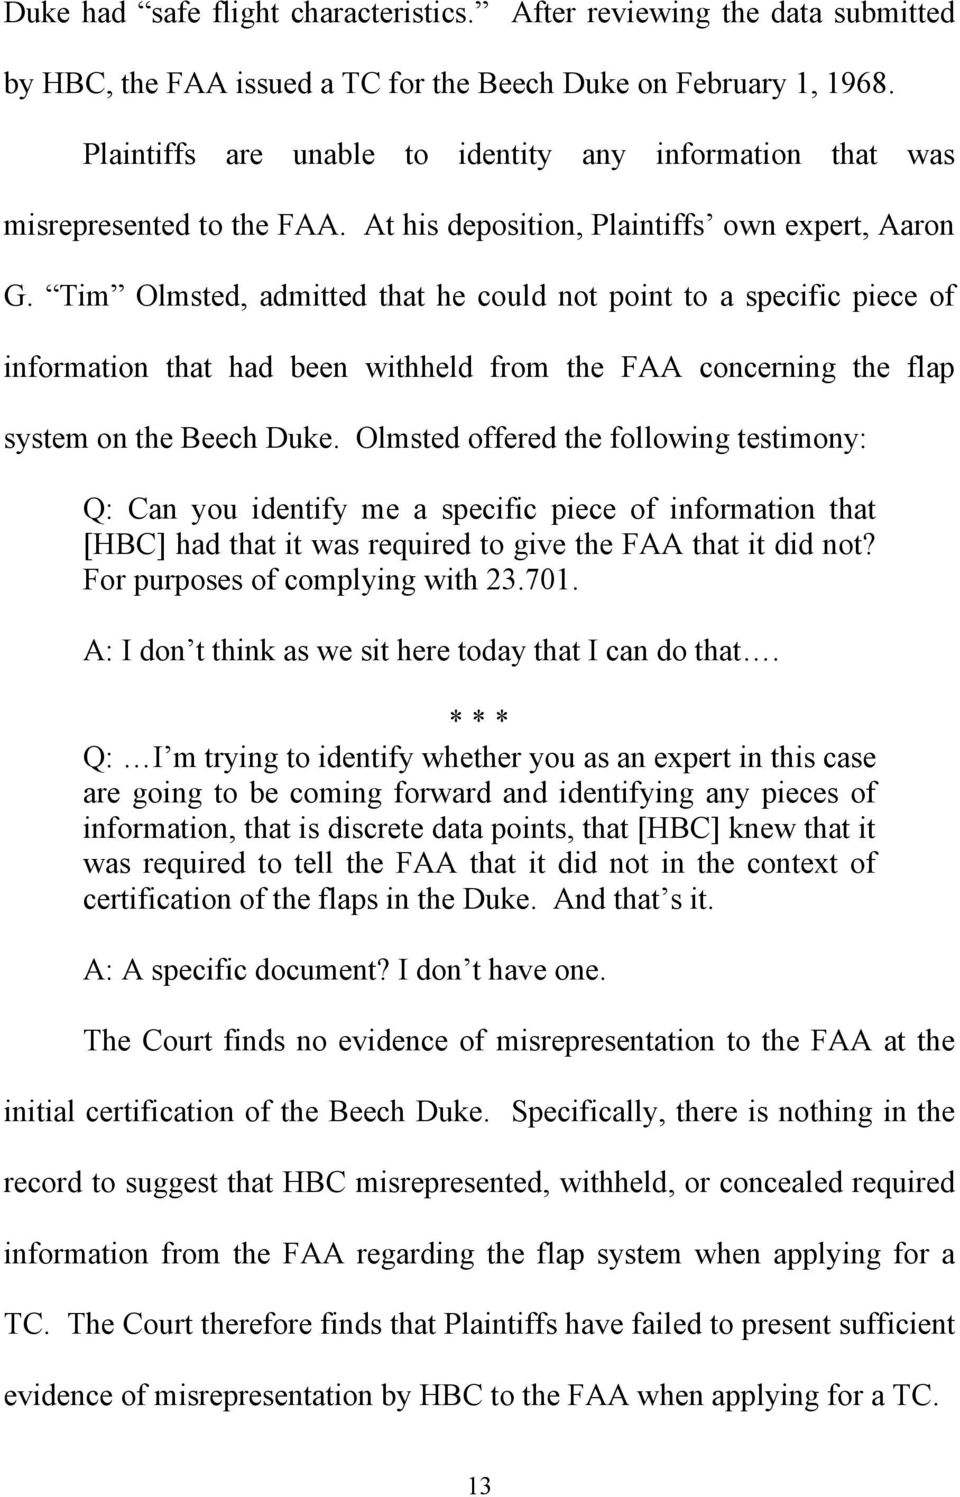 Tim Olmsted, admitted that he could not point to a specific piece of information that had been withheld from the FAA concerning the flap system on the Beech Duke.